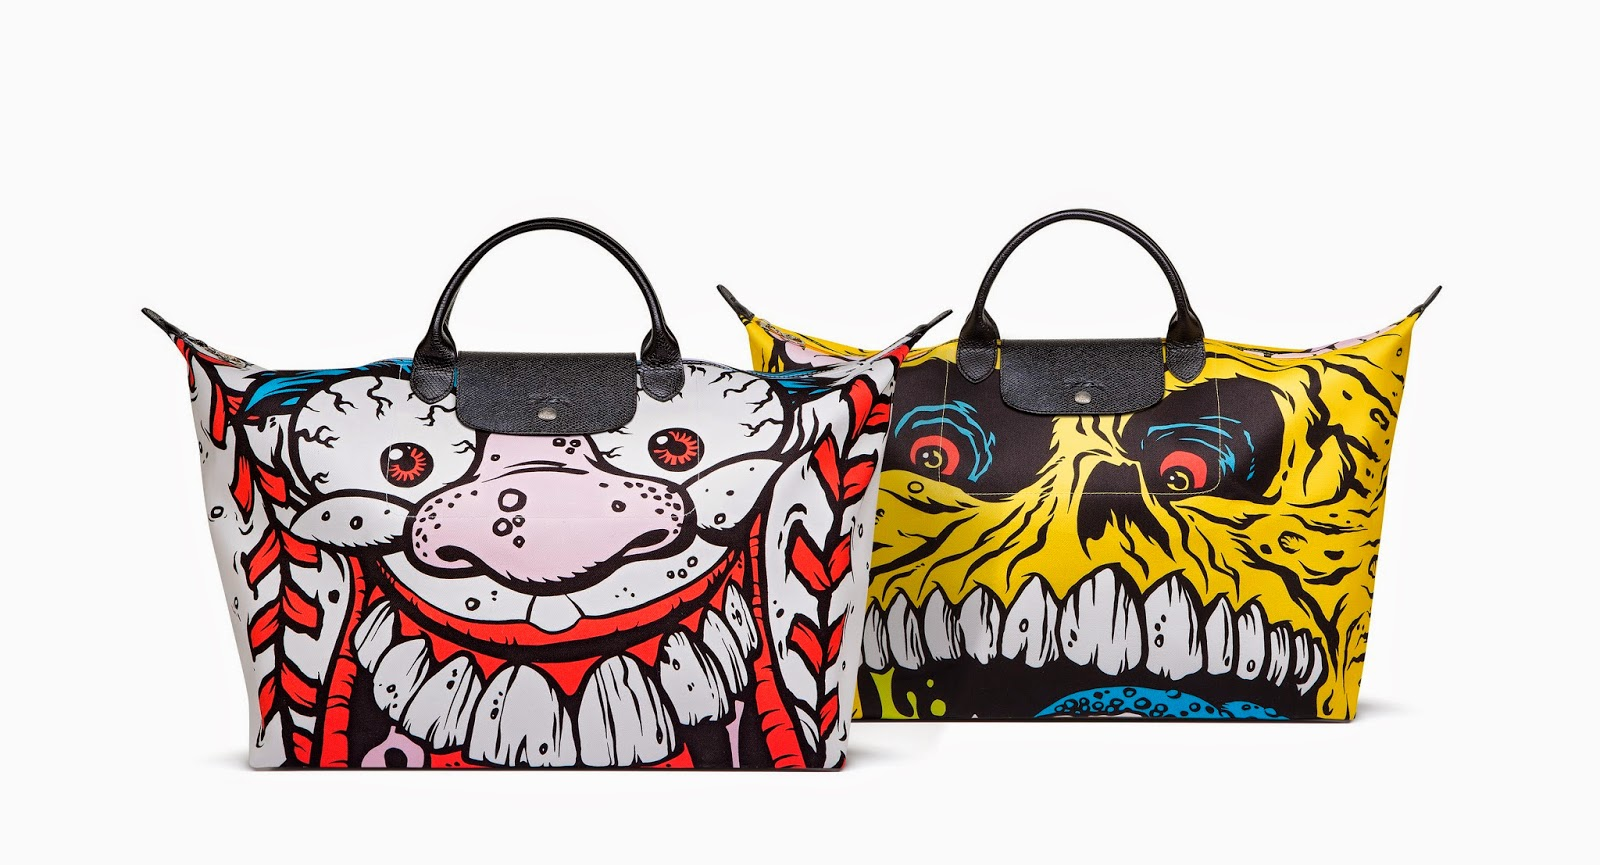 Le Pliage Madballs Jeremy Scott for Longchamp